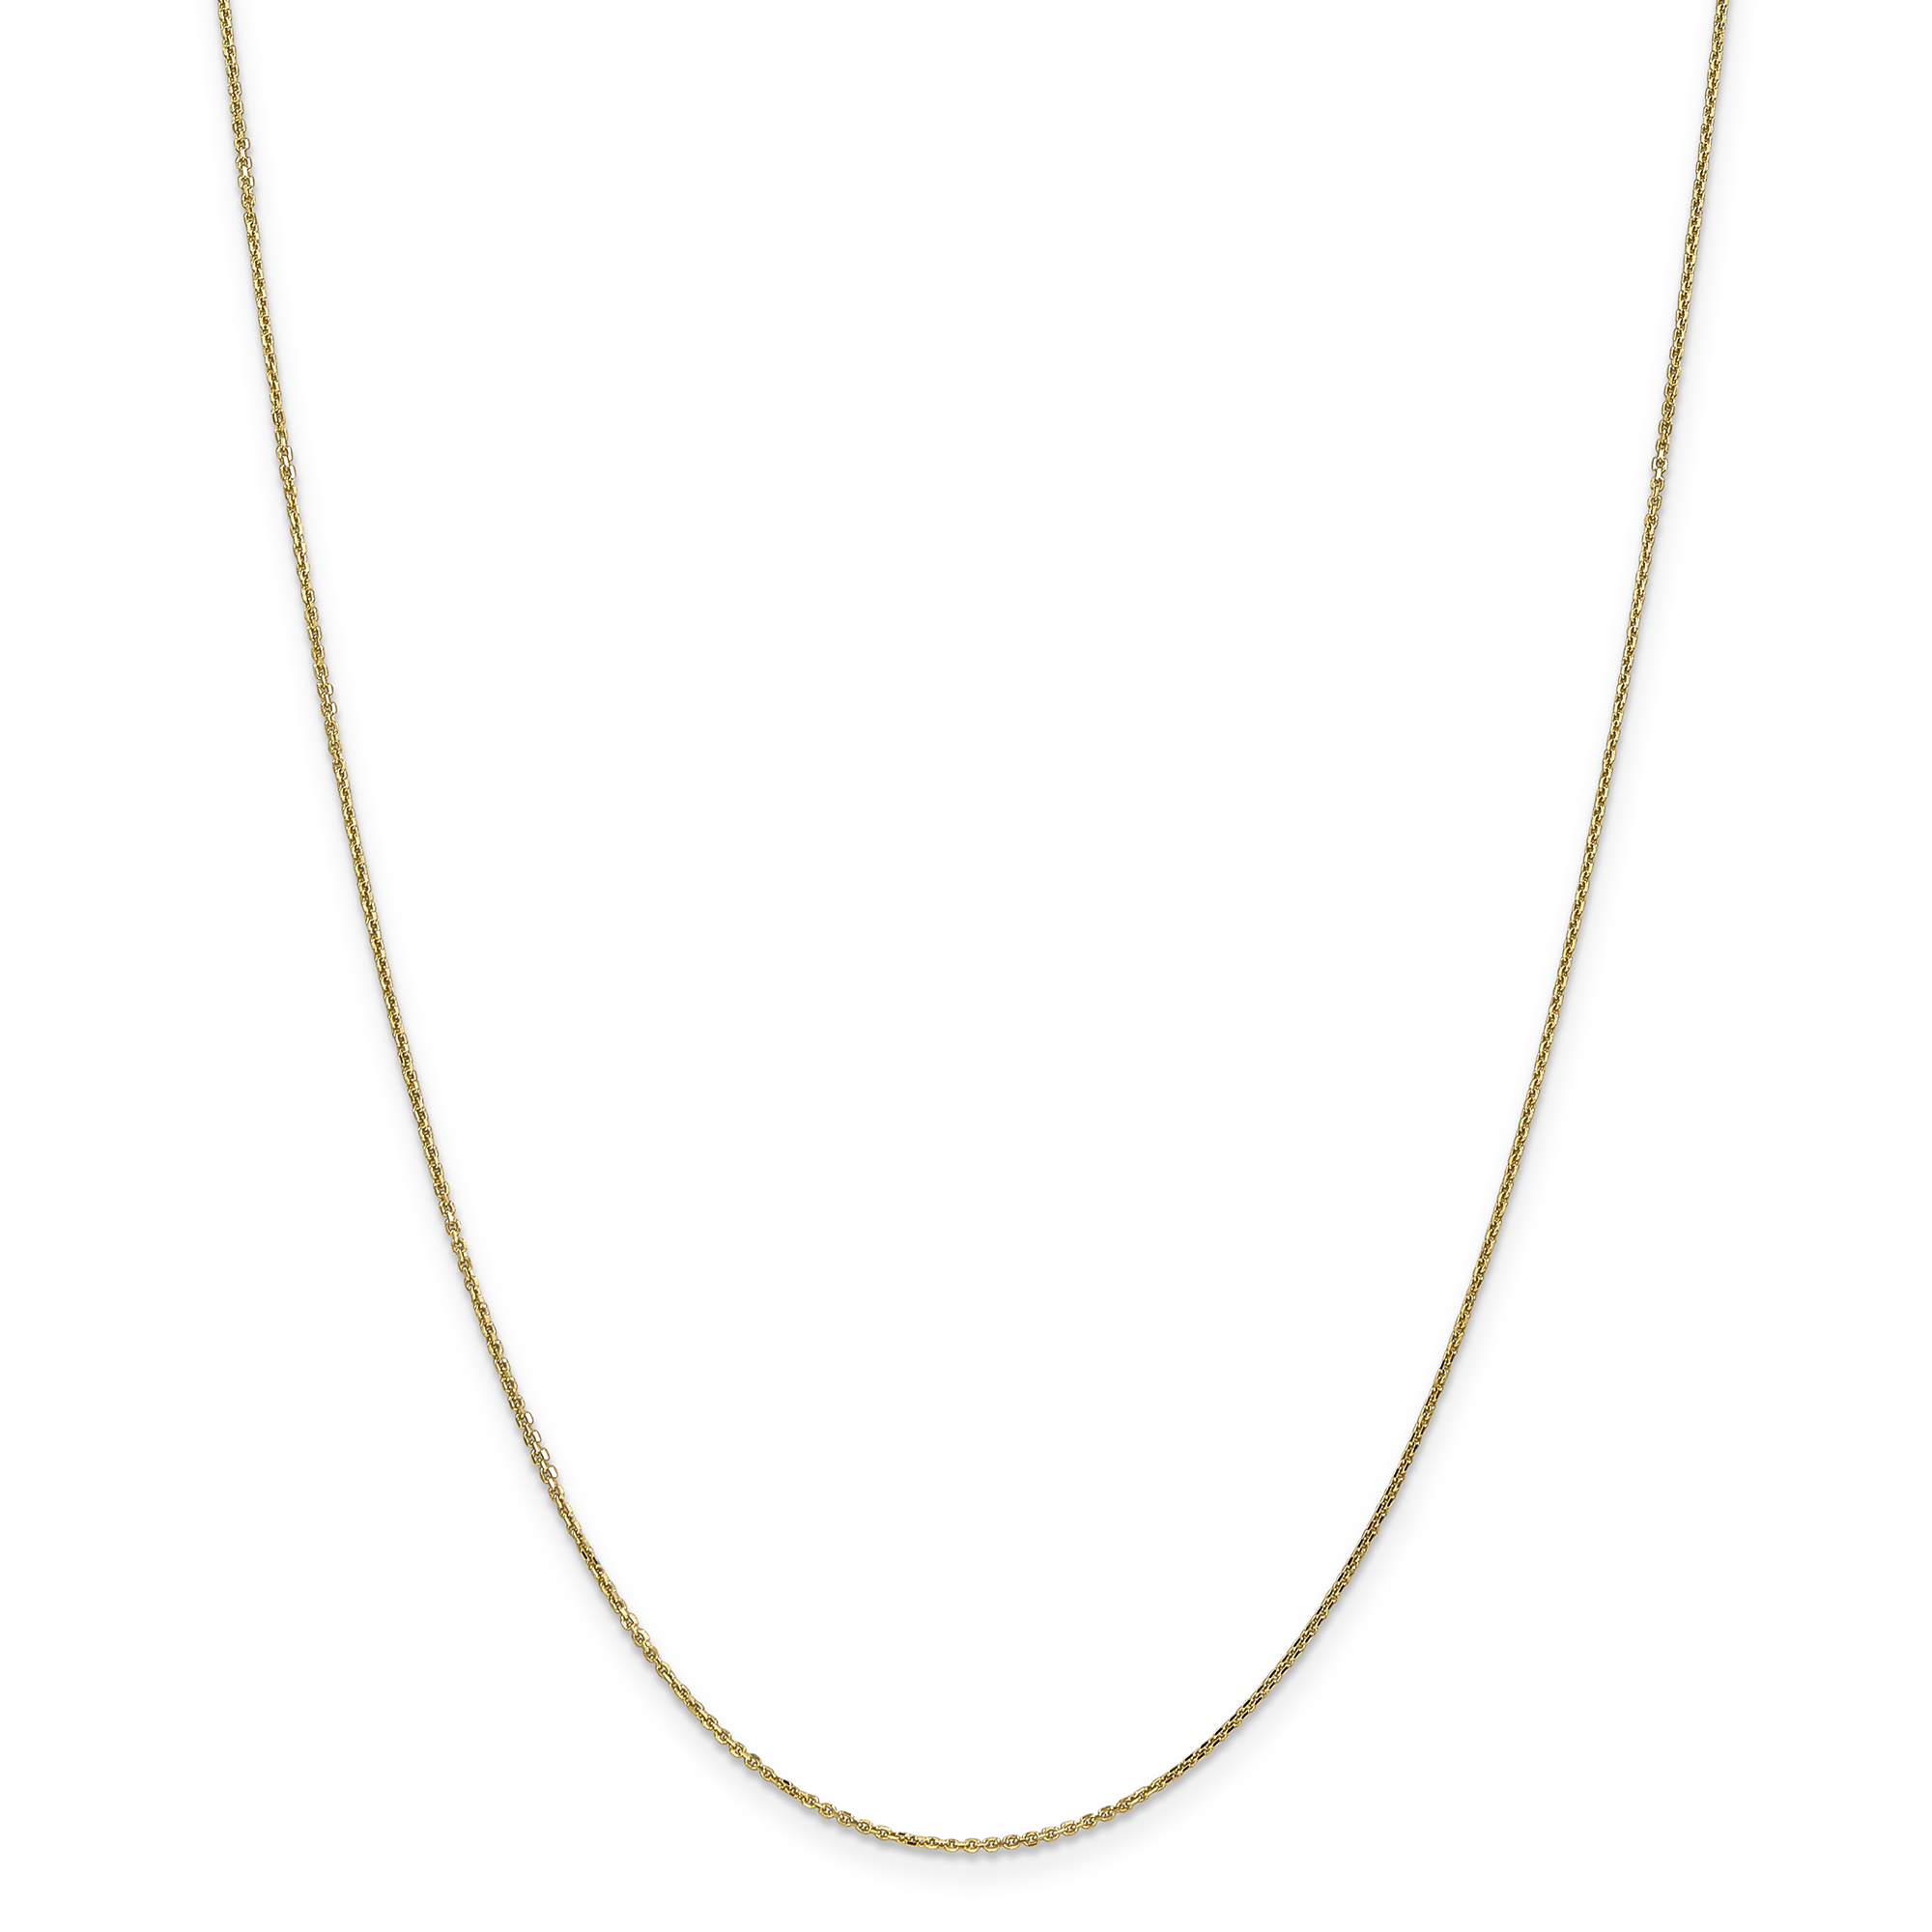 14K Yellow Gold .95mm Diamond Cut Cable Chain 24 Inch - image 5 de 5